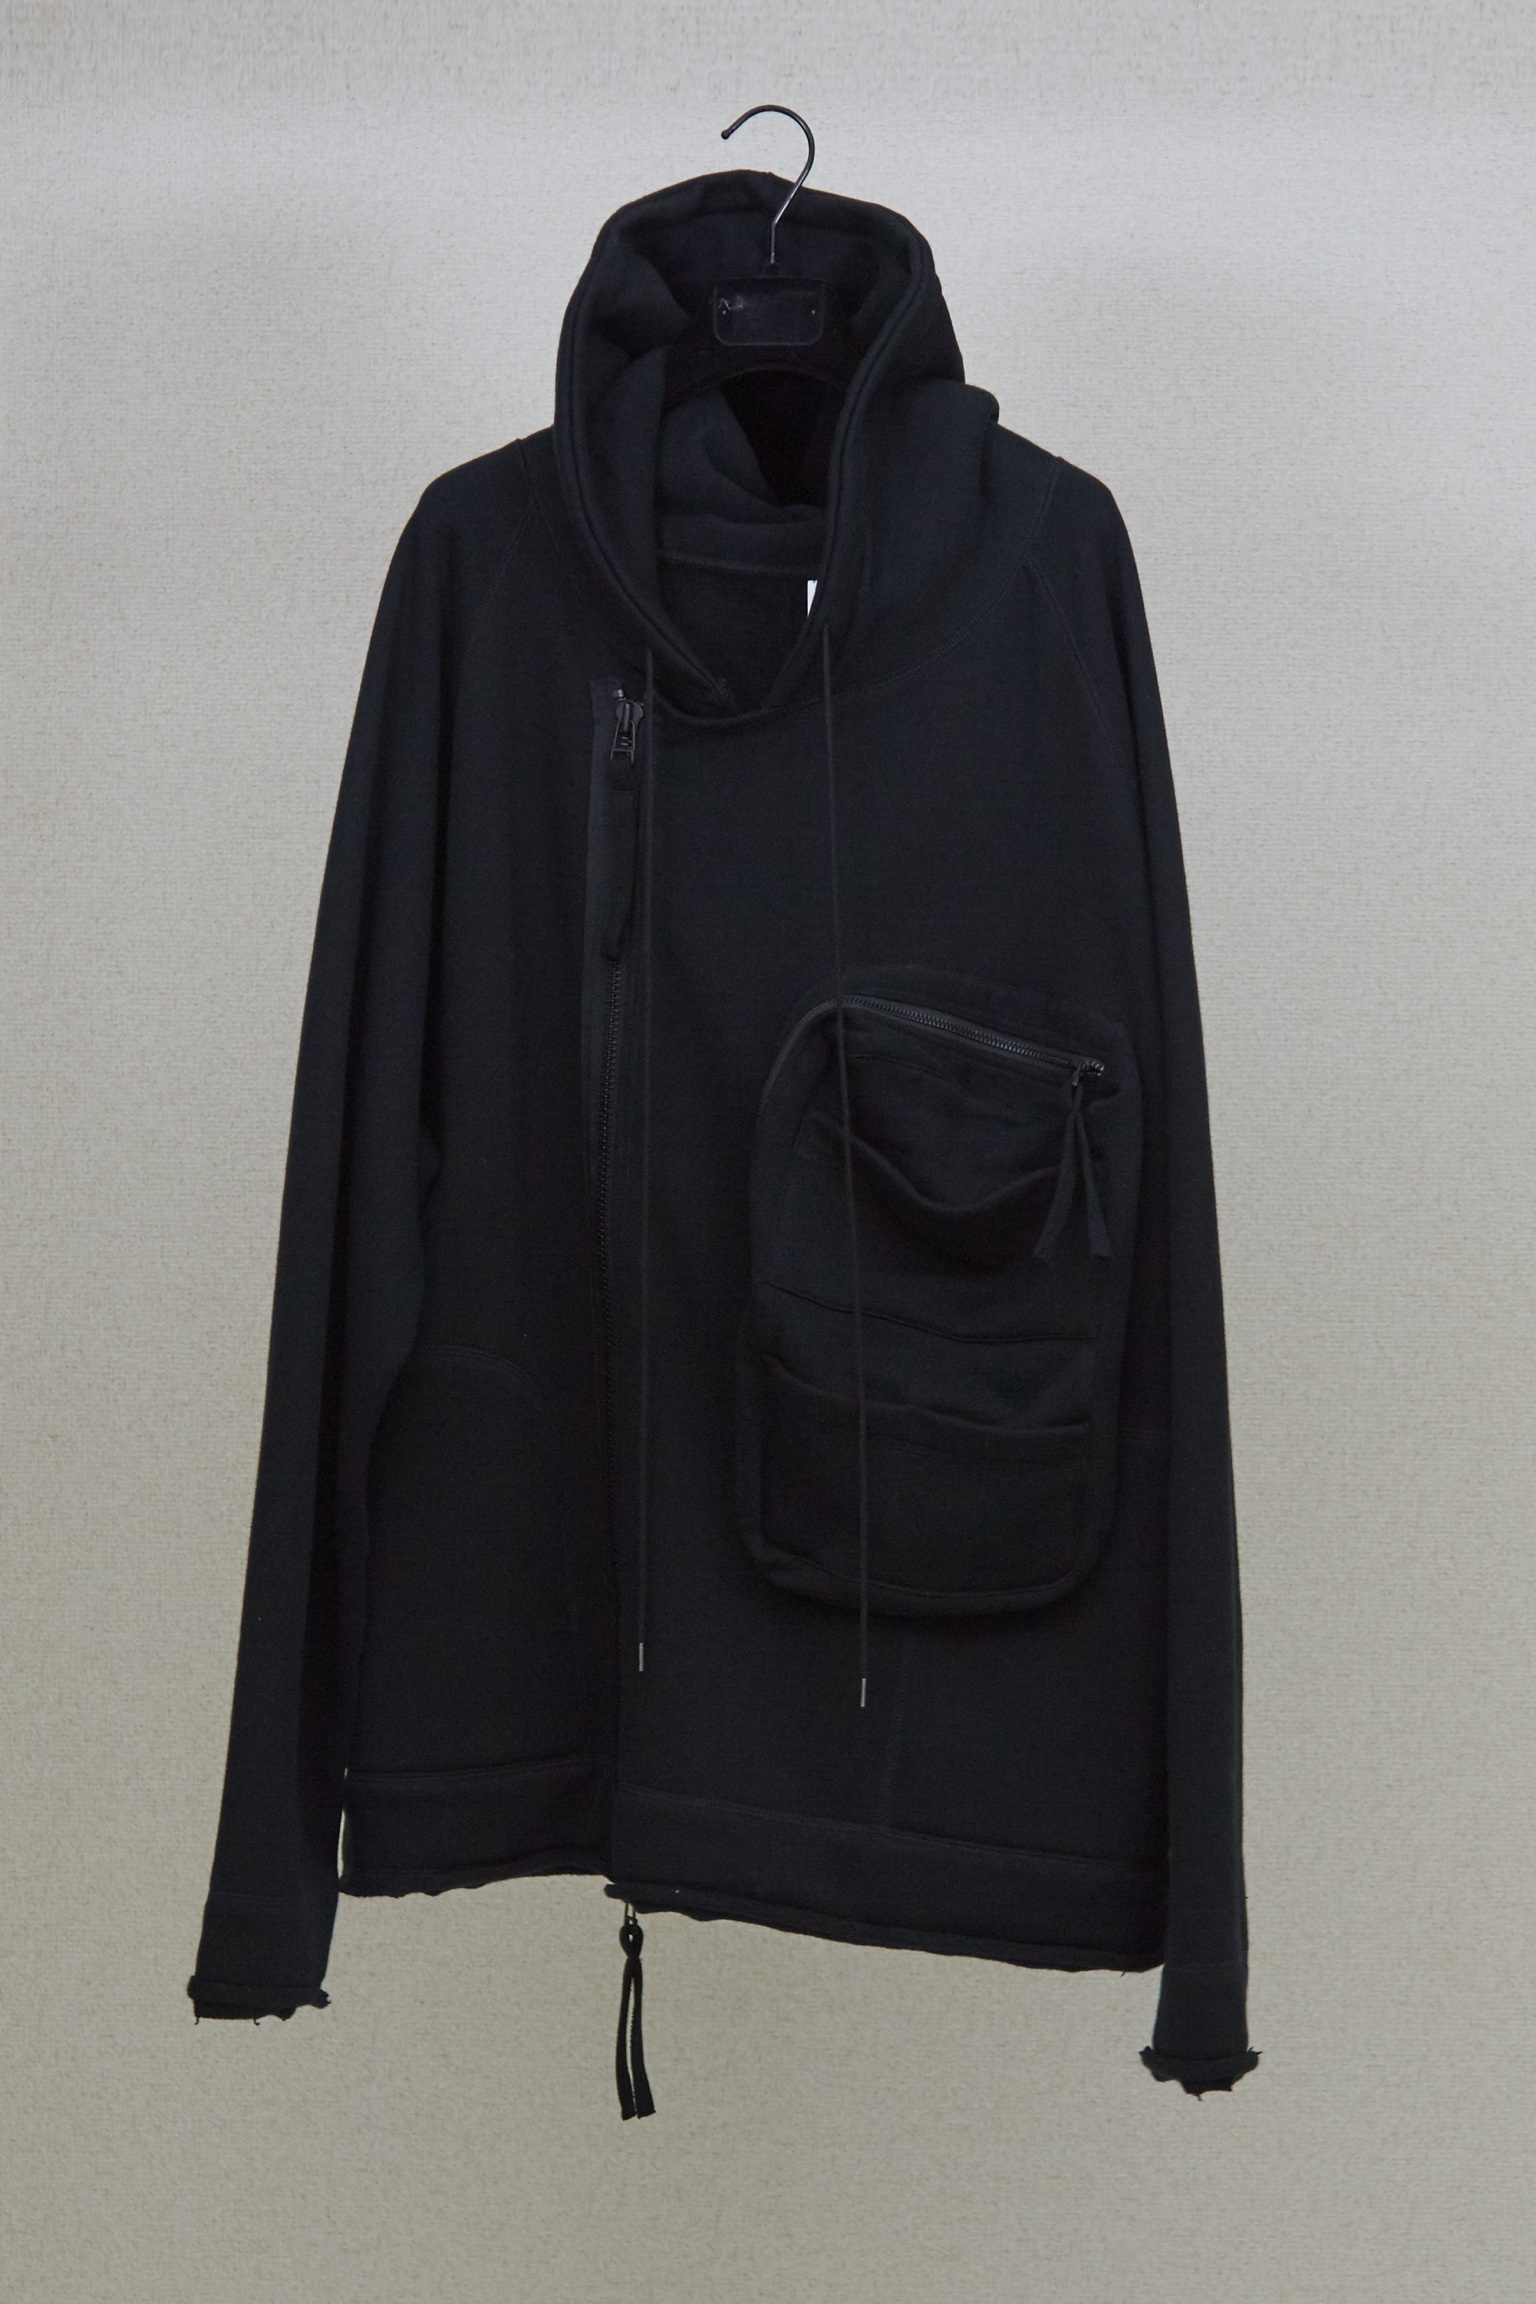 【HUMIS】 DEFORMATION MILITARY RAGLAN SWEAT PARKA